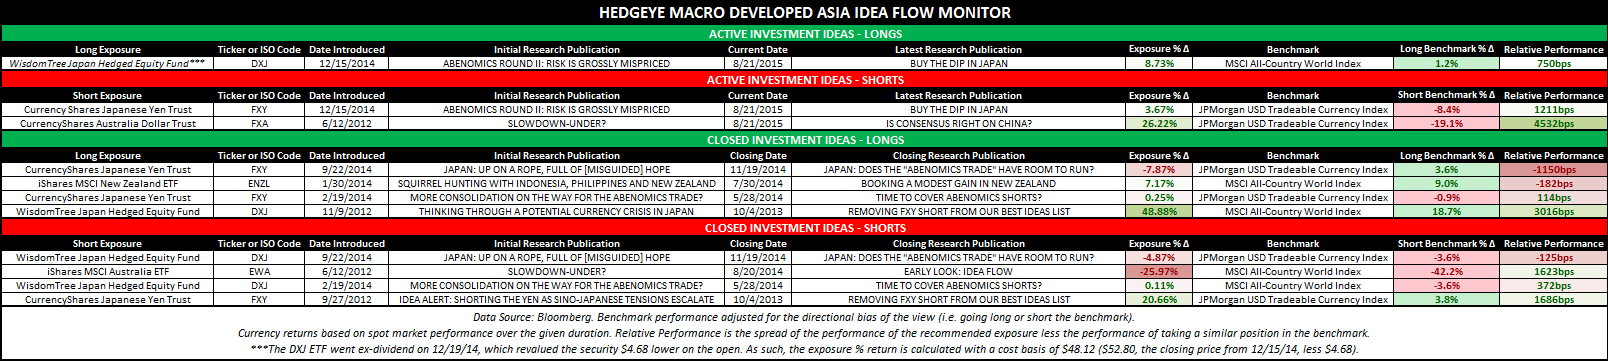 Important Asia/EM Portfolio Strategy Update - DM Asia Idea Flow Monitor